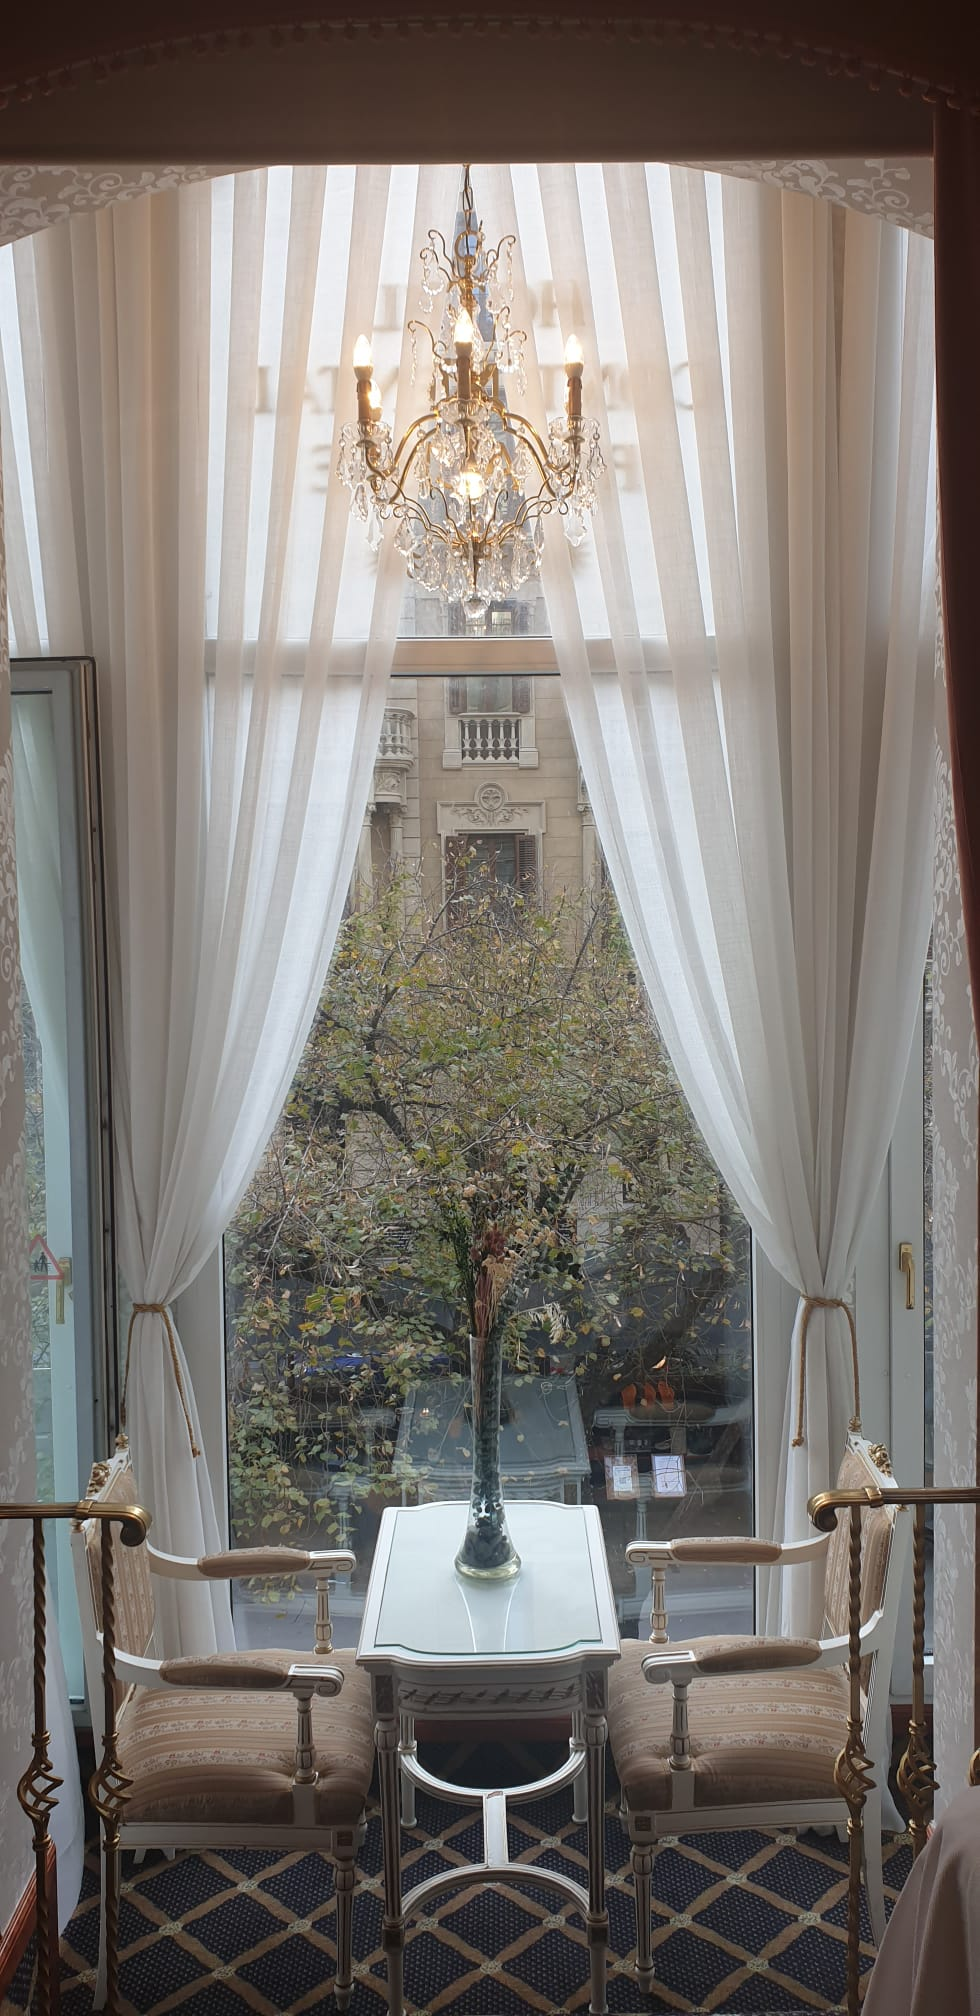 Hotel Continental Palacete BArcelona